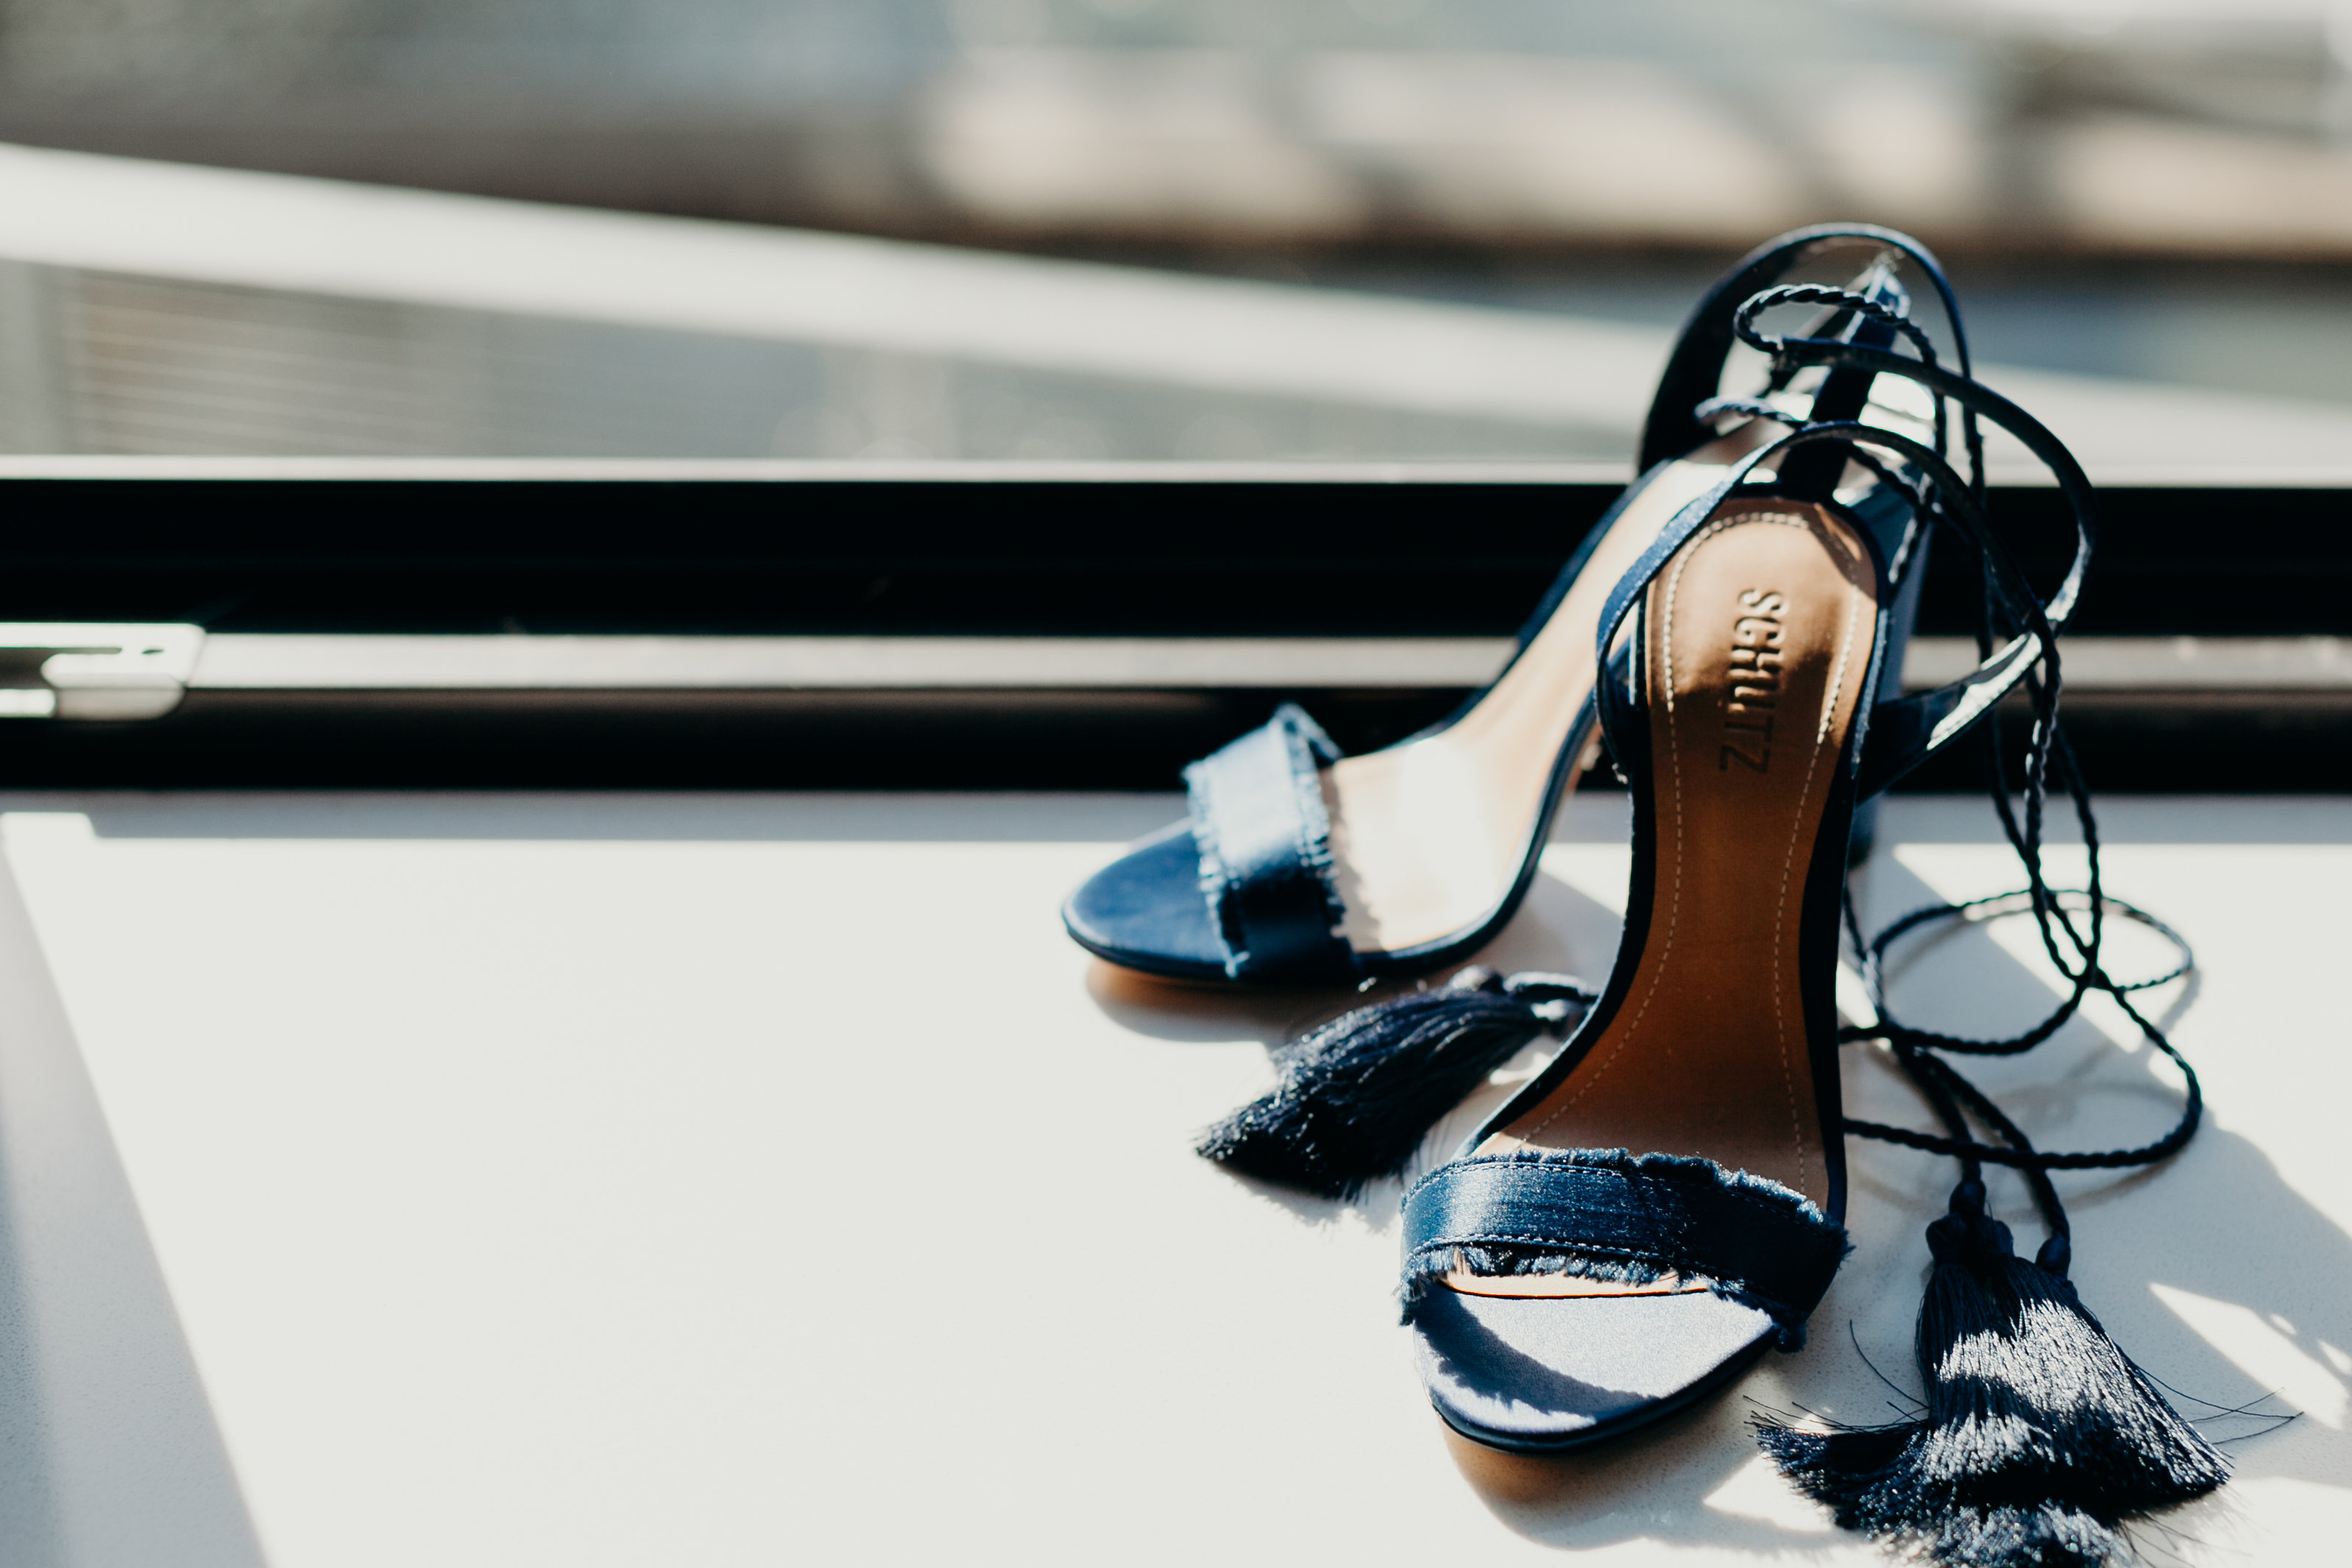 Chelsey's wedding shoes